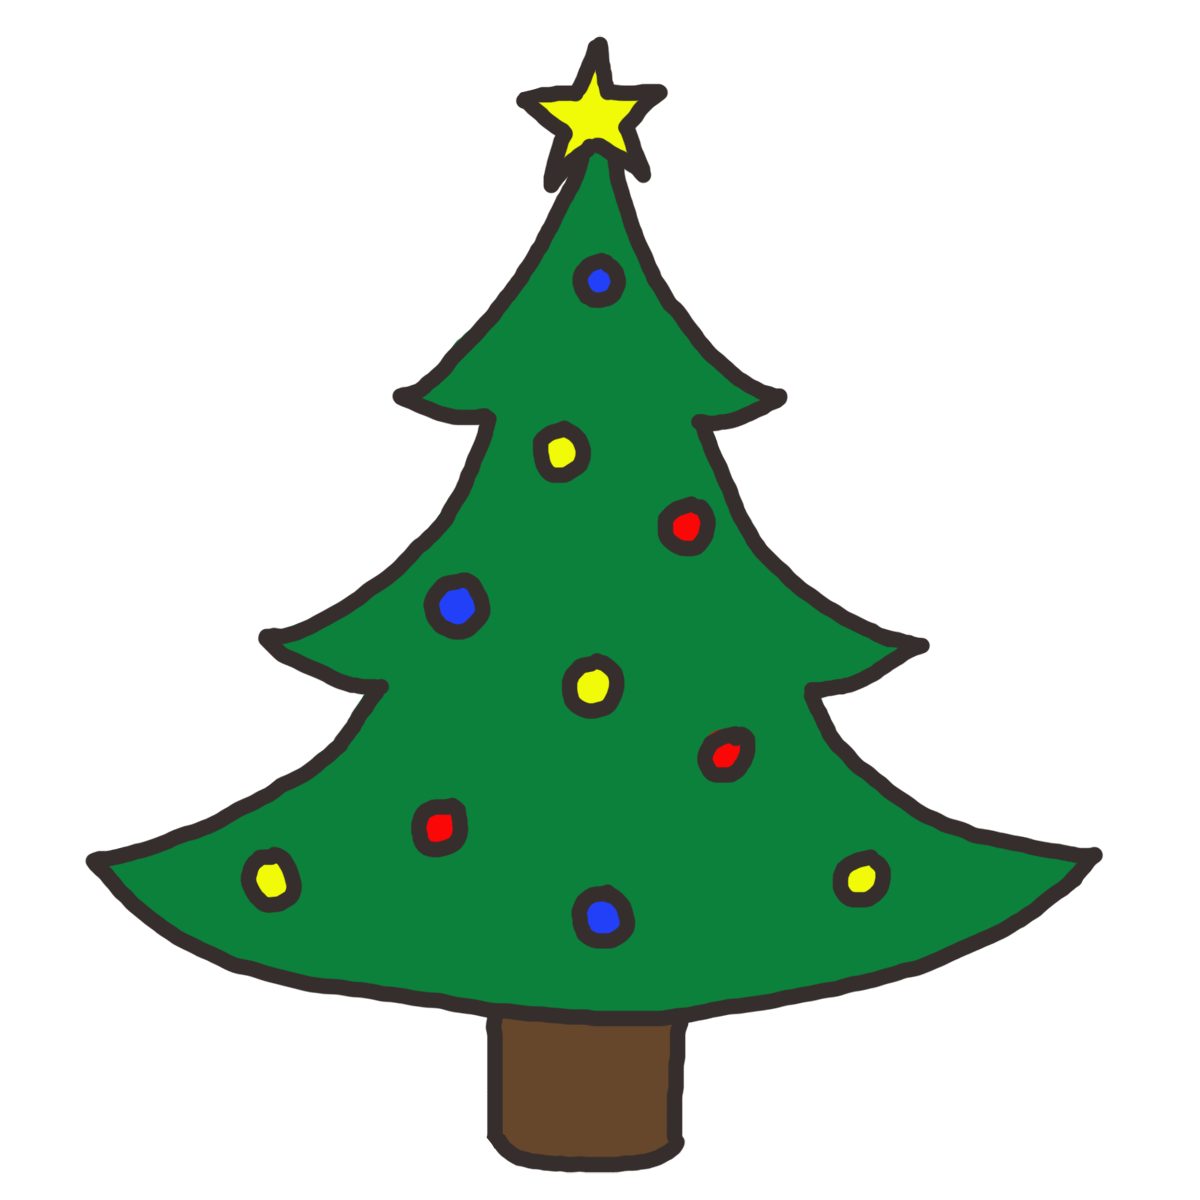 Christmas Tree Clip Art Christmas Tree Clipart Png